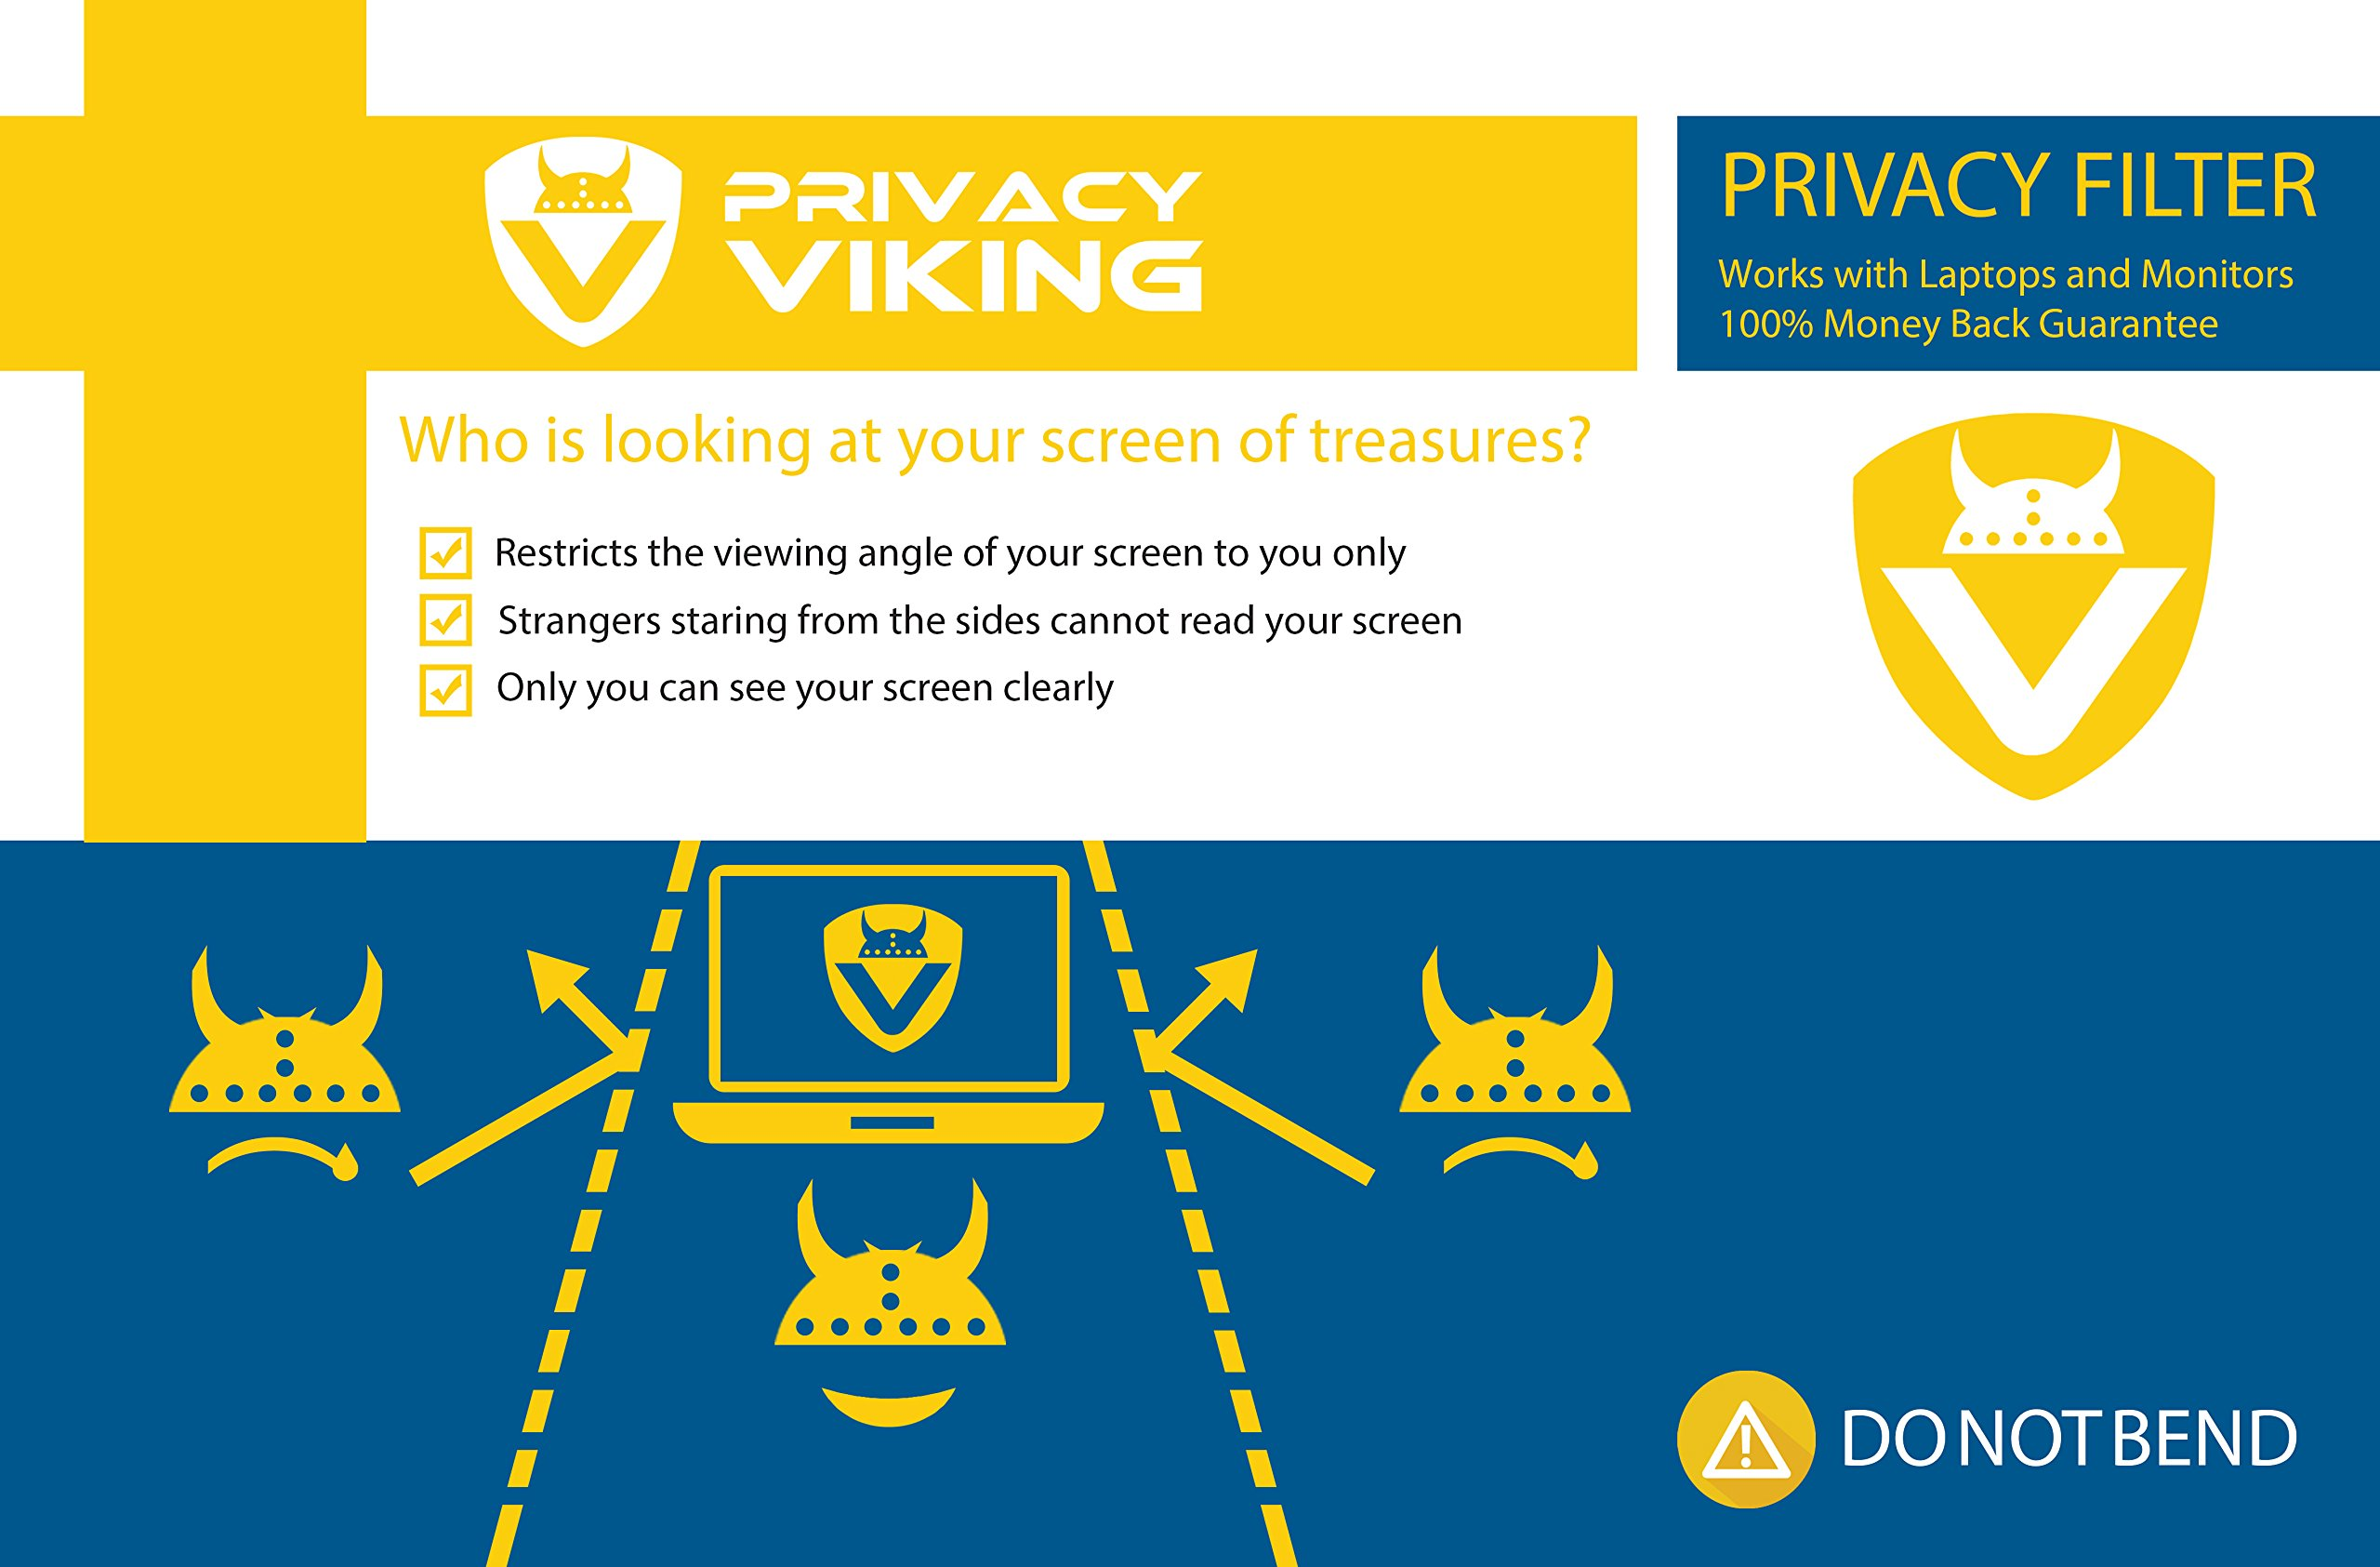 PrivacyViking Privacy Filter for Monitors and Laptops 13.3W9B